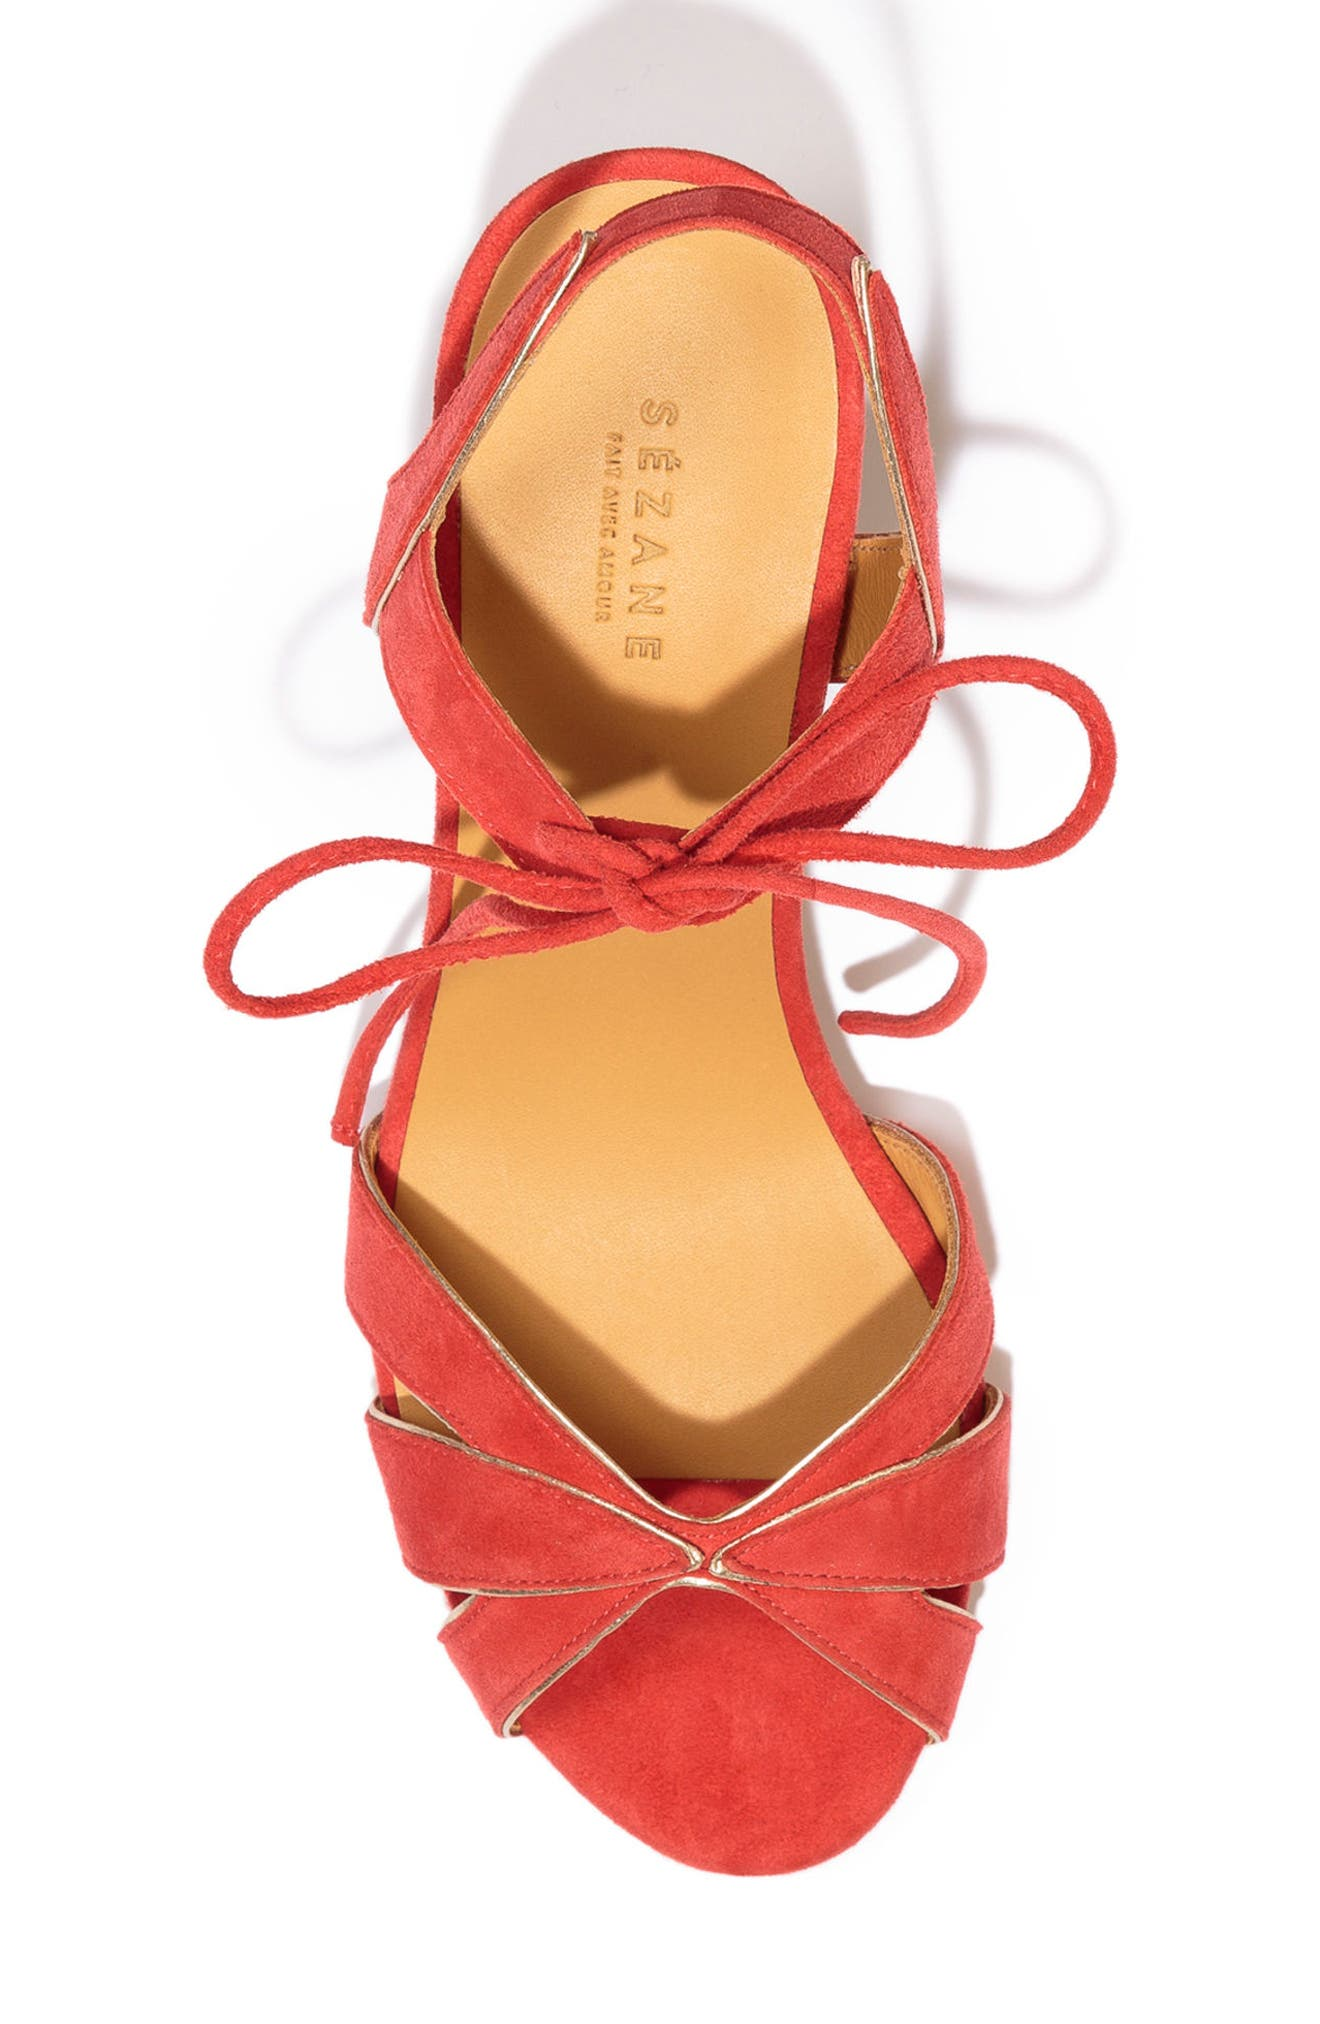 Victoire Ankle Tie Sandal,                             Alternate thumbnail 4, color,                             Coral Red Suede